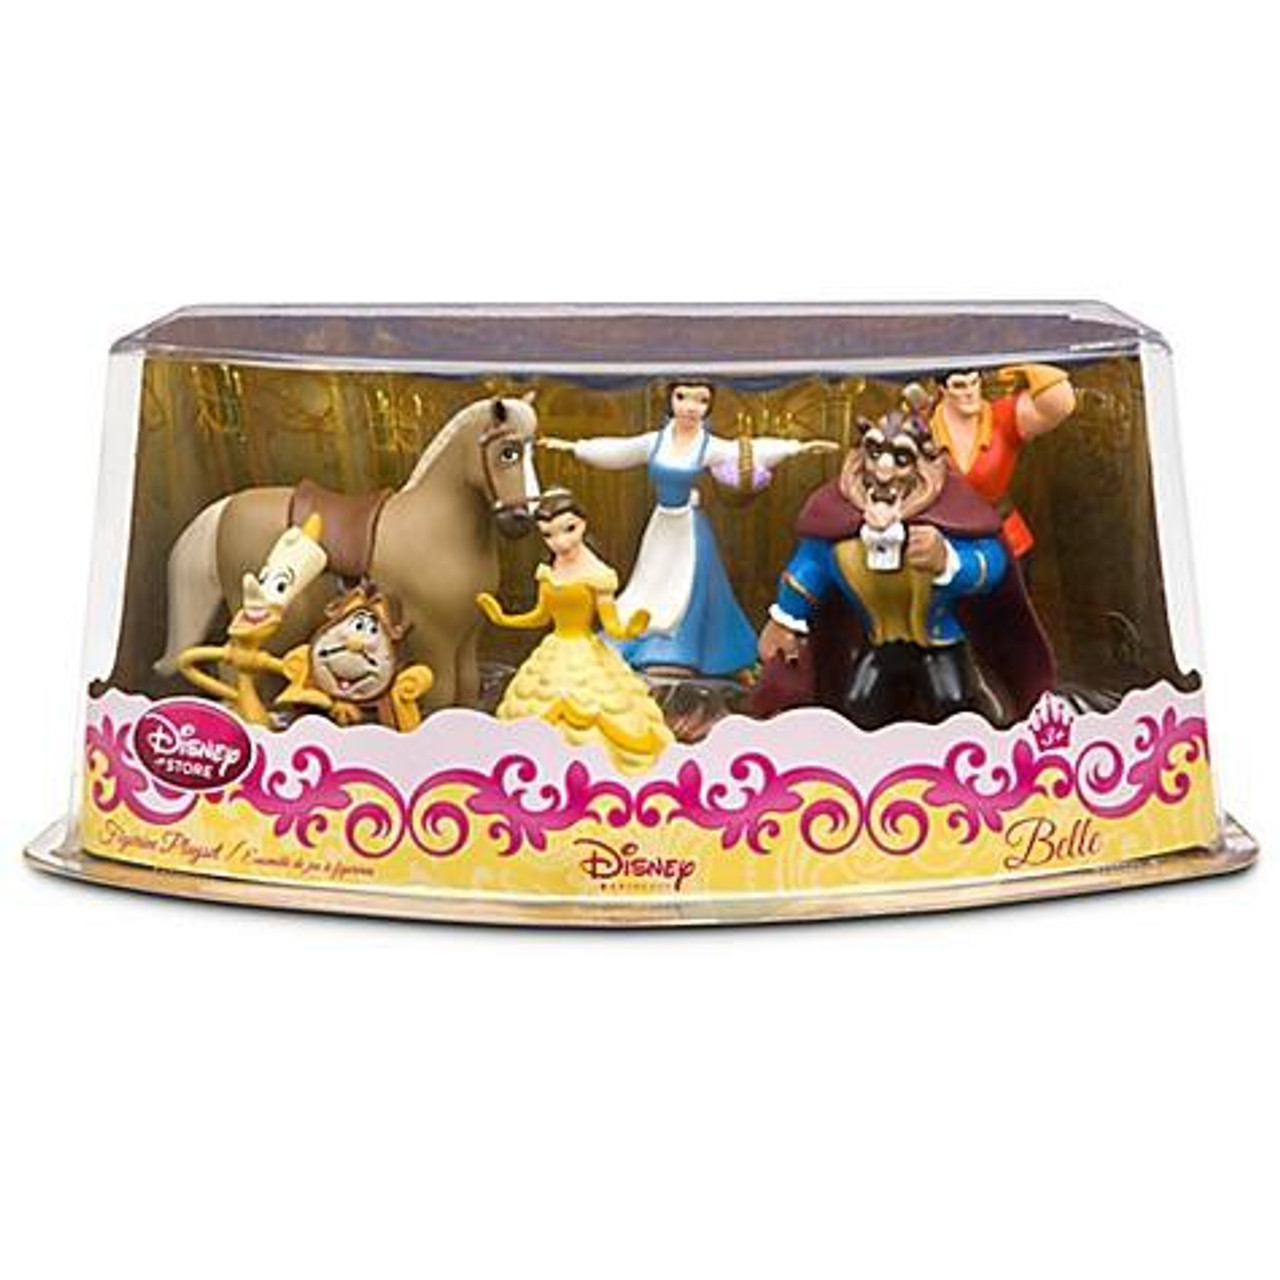 Disney Princess Beauty and the Beast Exclusive 6-Piece PVC Figure Playset